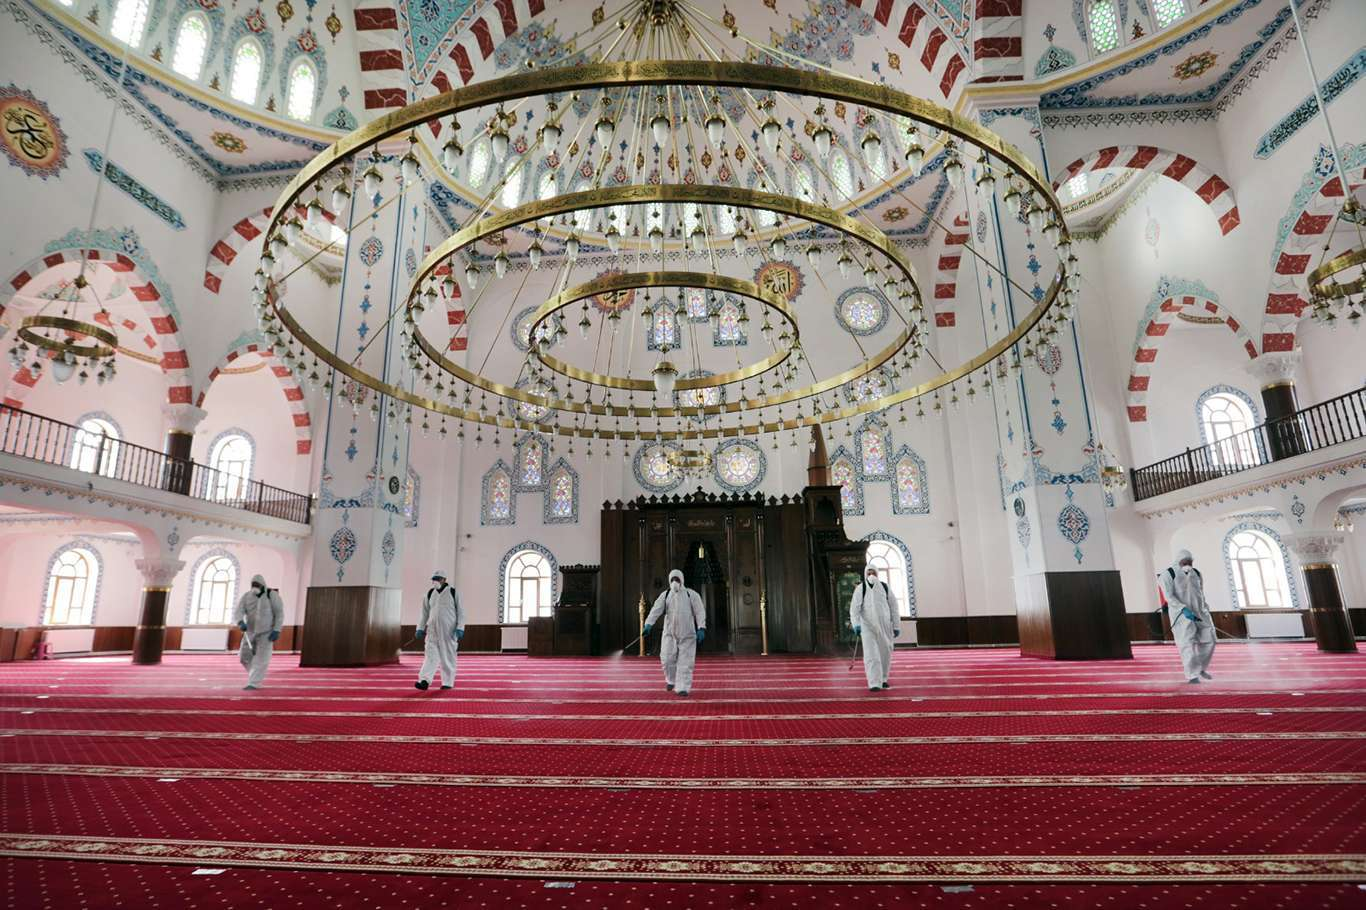 Muslims across the world prepare for the holy month of Ramadan